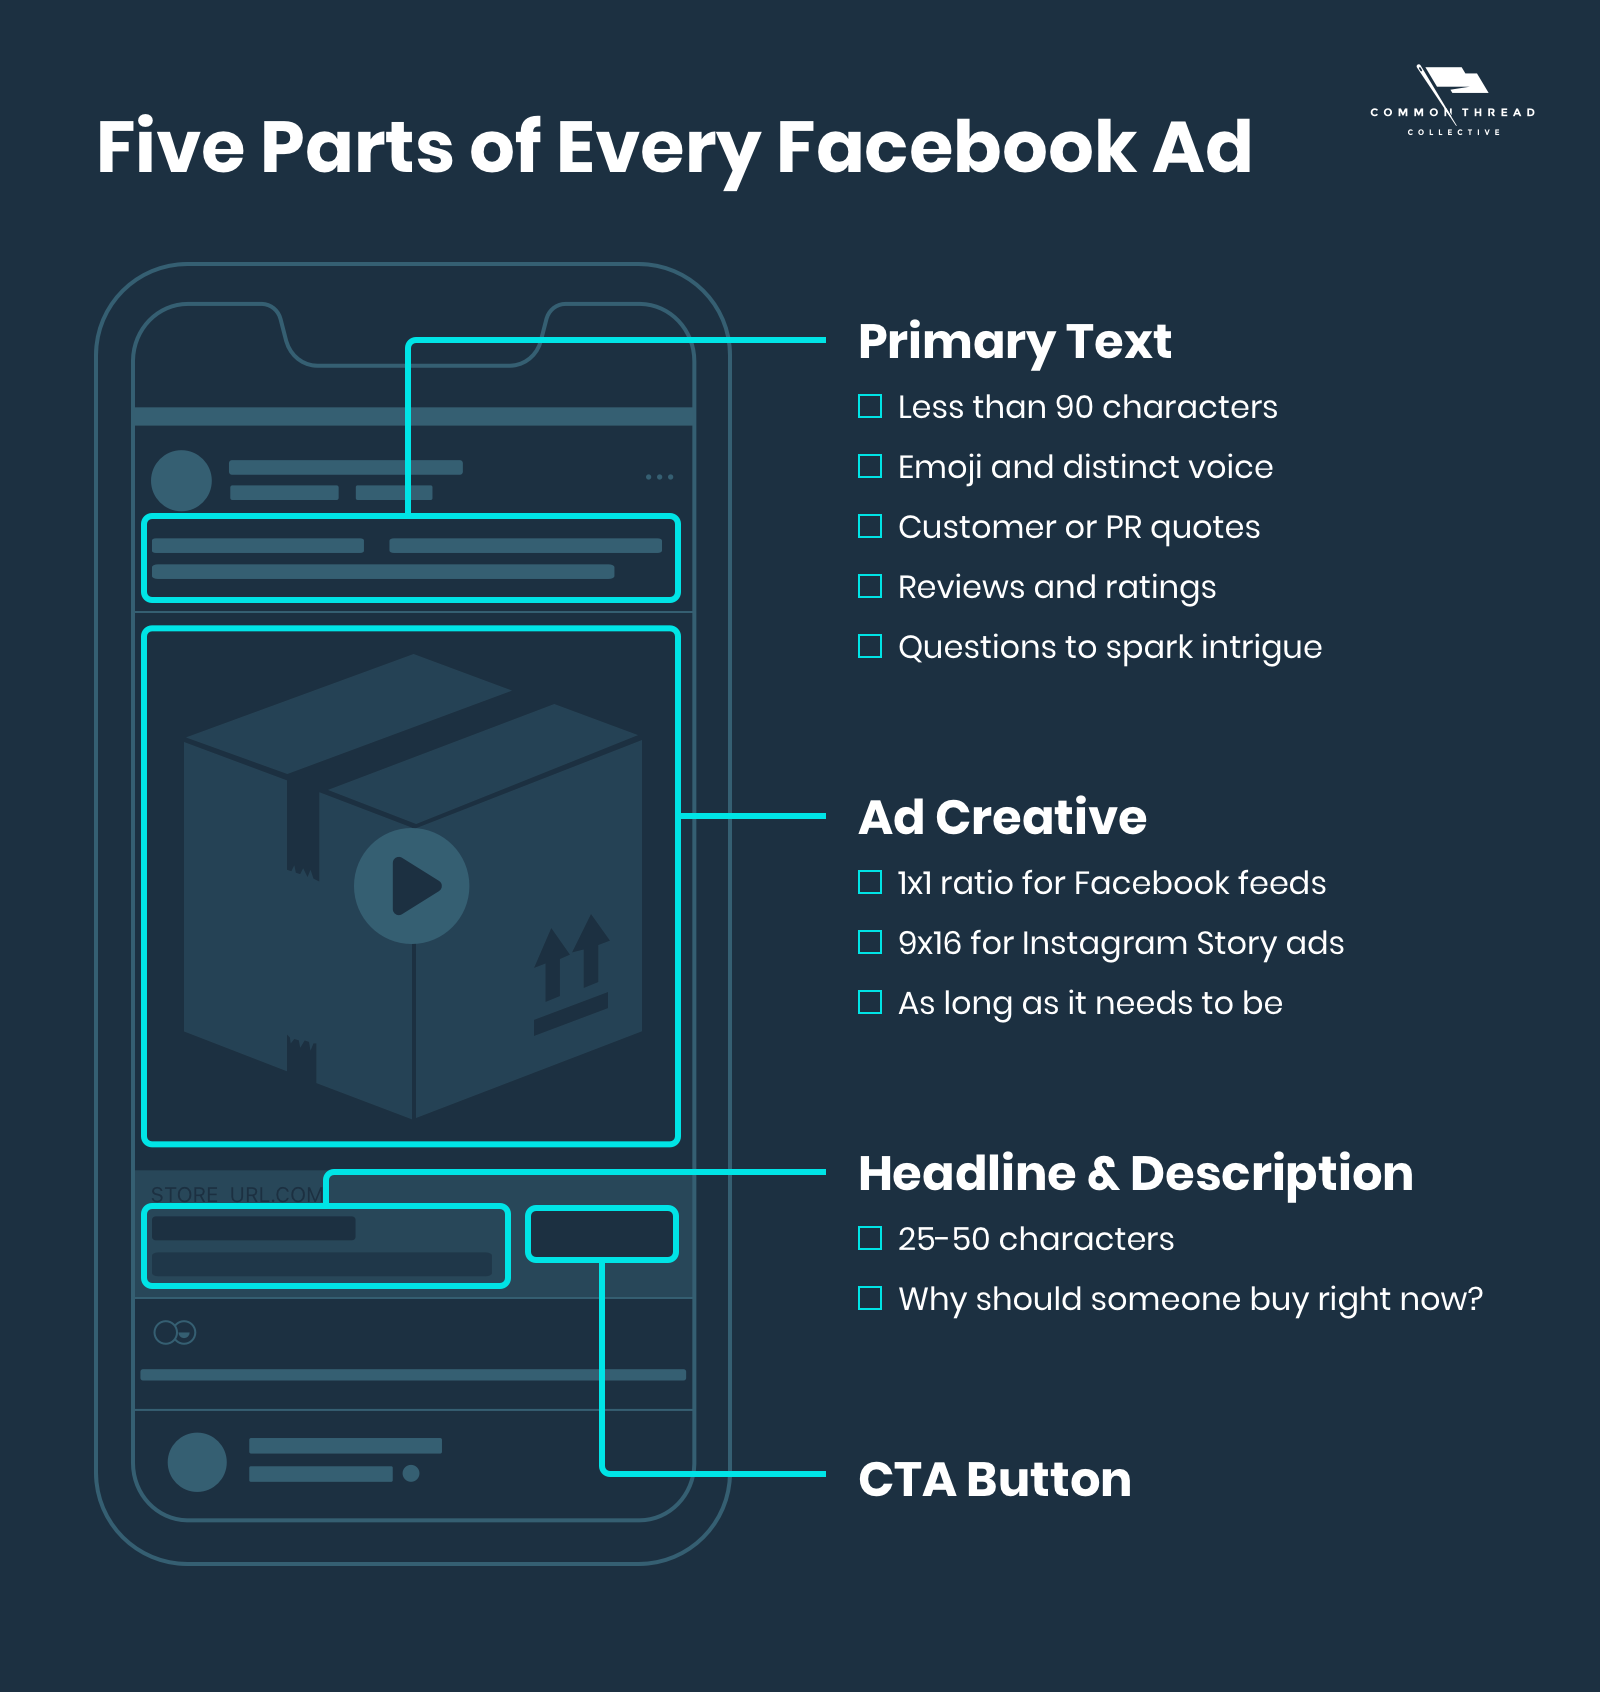 Five Parts of Every Facebook Ad